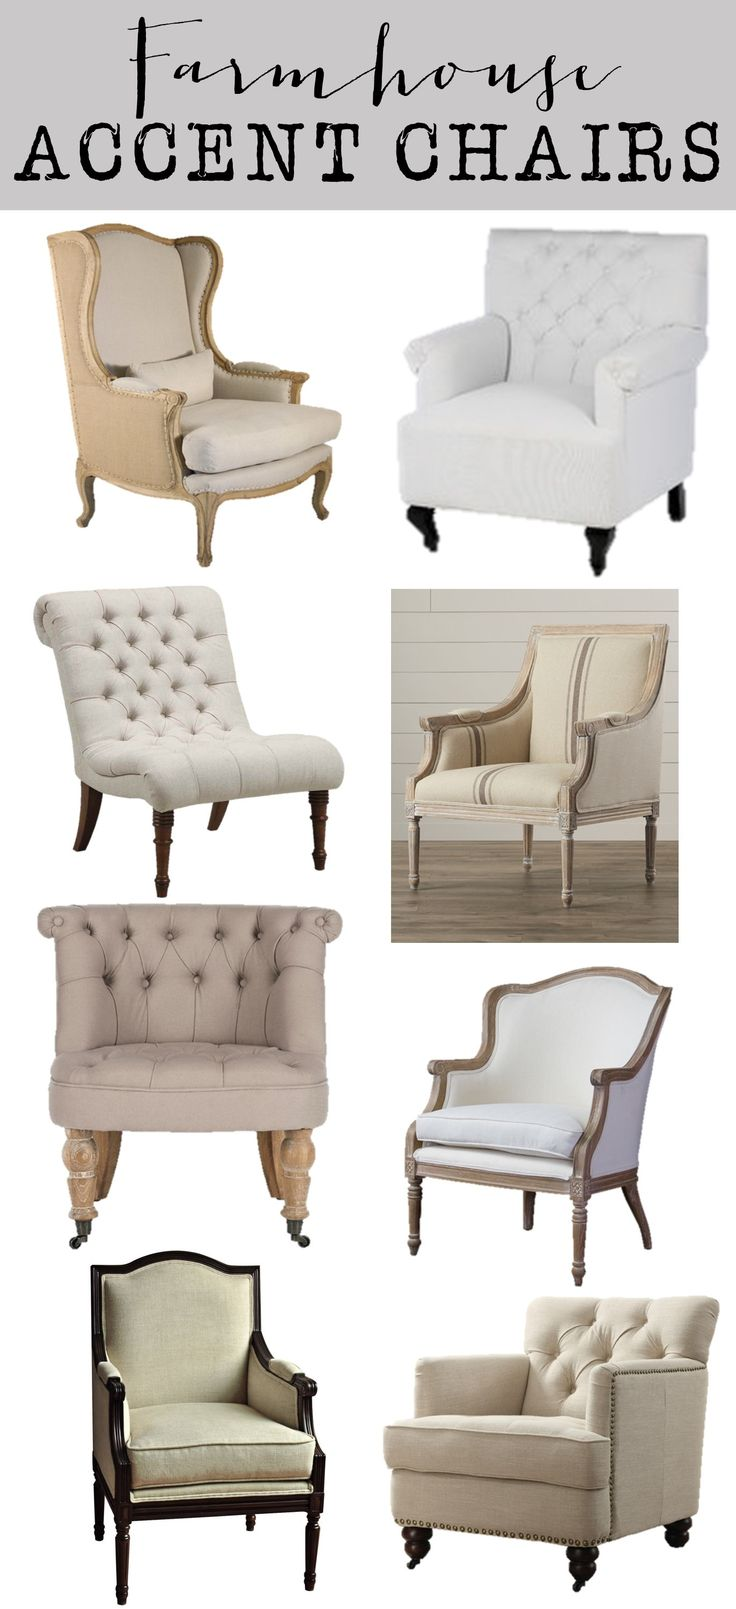 Furniture accent furniture club accent chairs red barrel studio - Friday Favorites Farmhouse Accent Chairs Farmhouse Chairsfarmhouse Furnituremodern